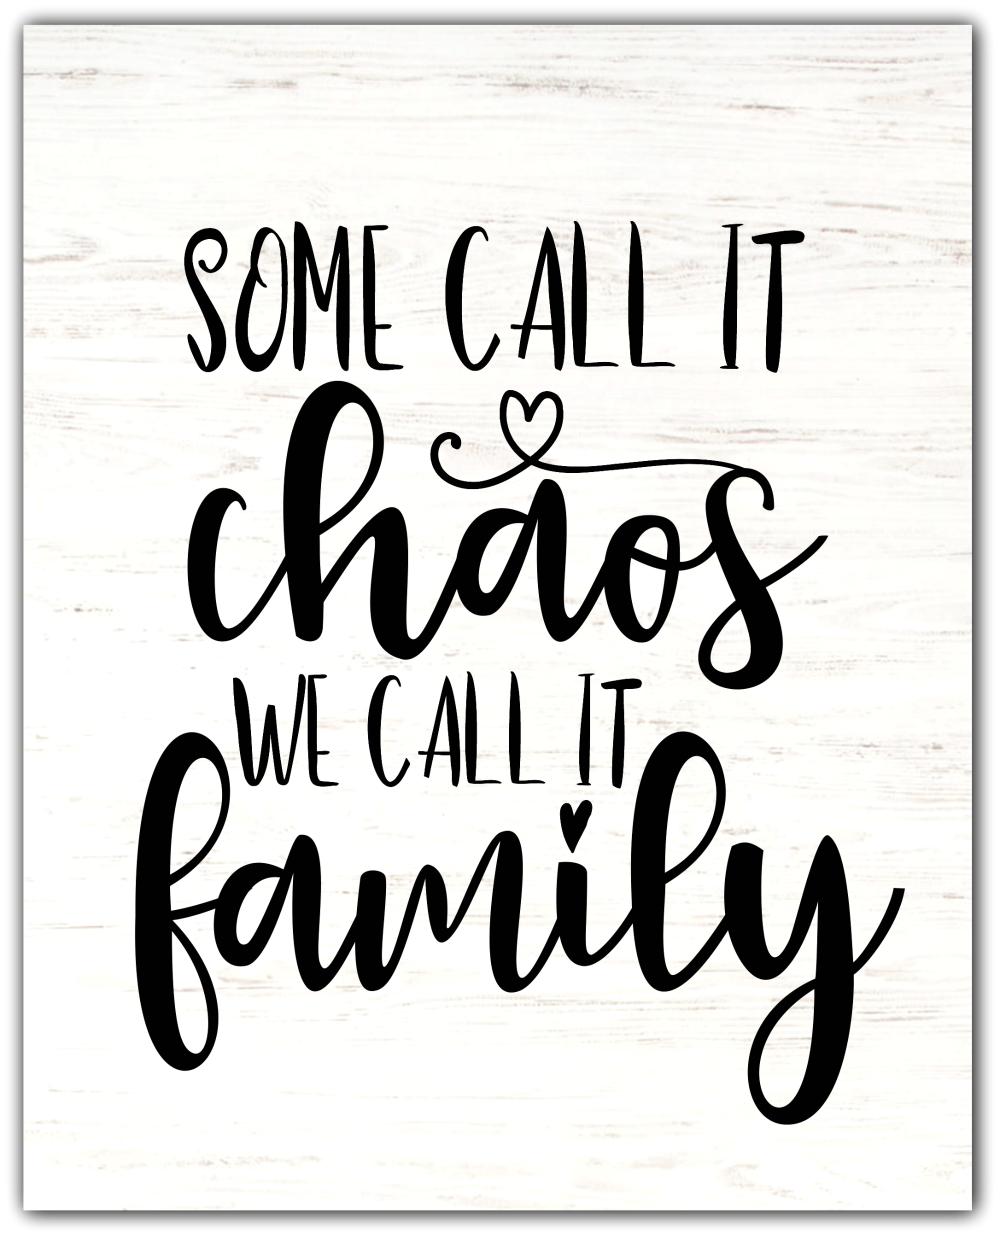 #printable #freebie #family #friday #chaos #some #call #file #and #svg #cut #it #weSome Call it Chaos, We Call it Family Printable and SVG Cut File Some Call it Chaos, We Call it Family {Freebie Friday}Some Call it Chaos, We Call it Family {Freebie Friday}